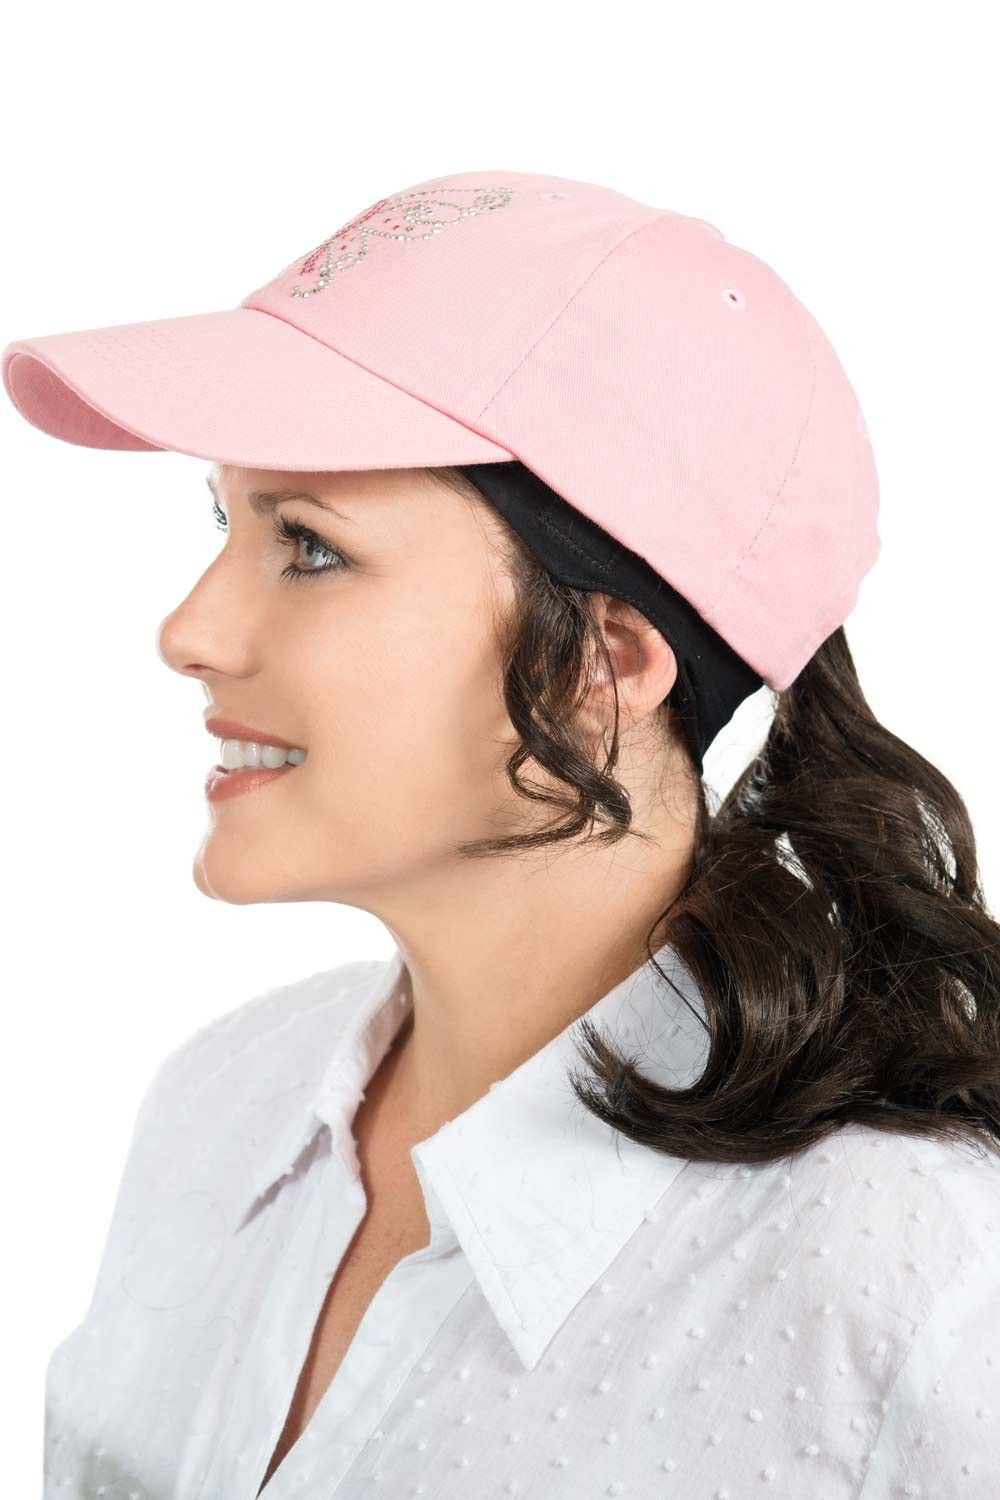 Ponytail Headband For Hats Baseball Cap With Hair By Cardani Baseball Cap Hairstyles Ponytail Hat Hairstyles